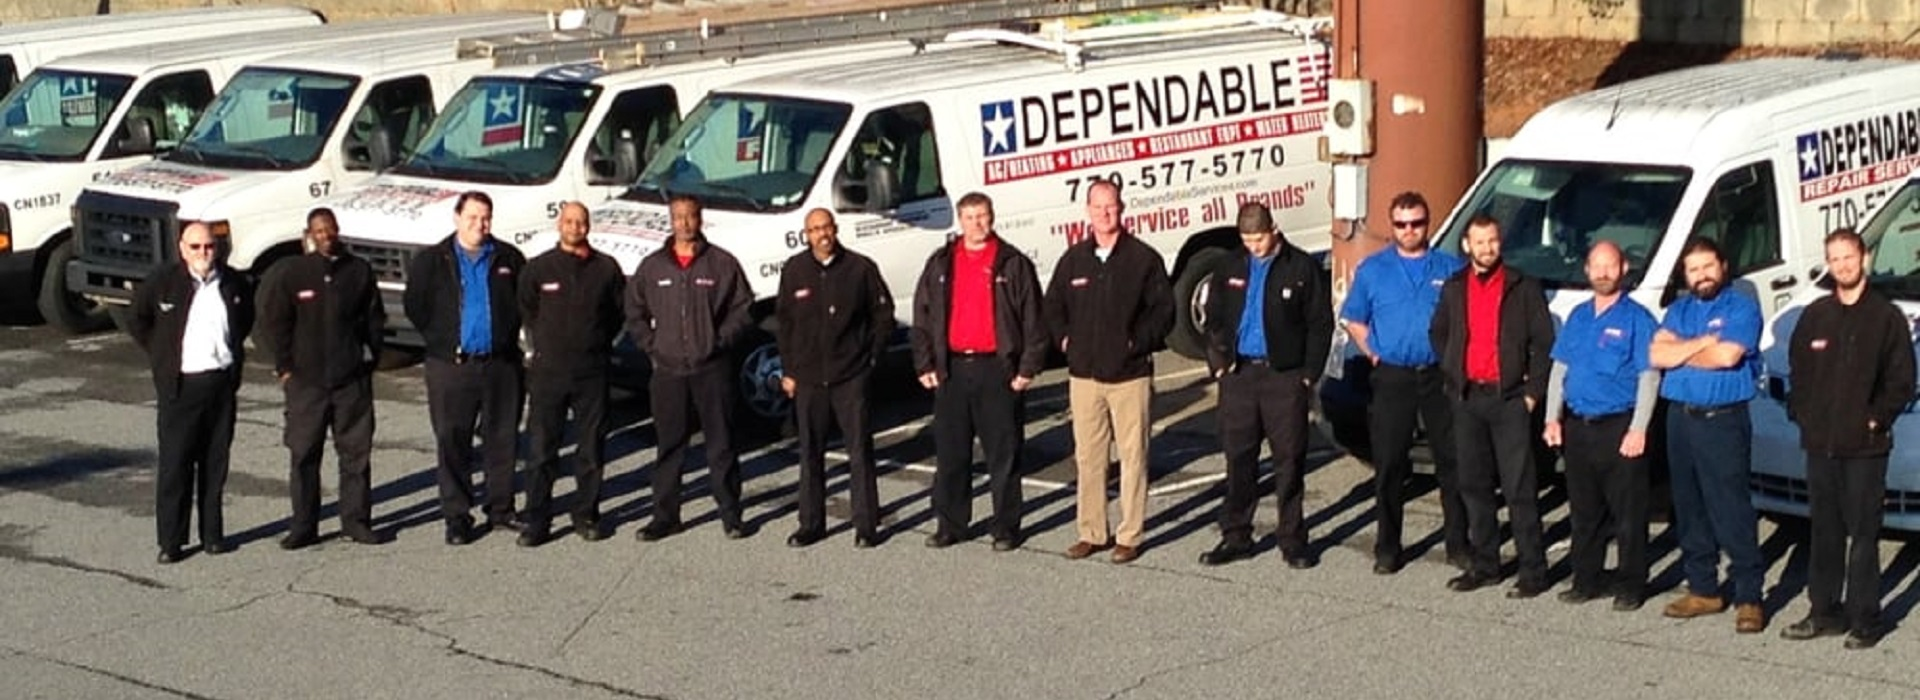 Dependable Arrpliance Repair Duluth Staff